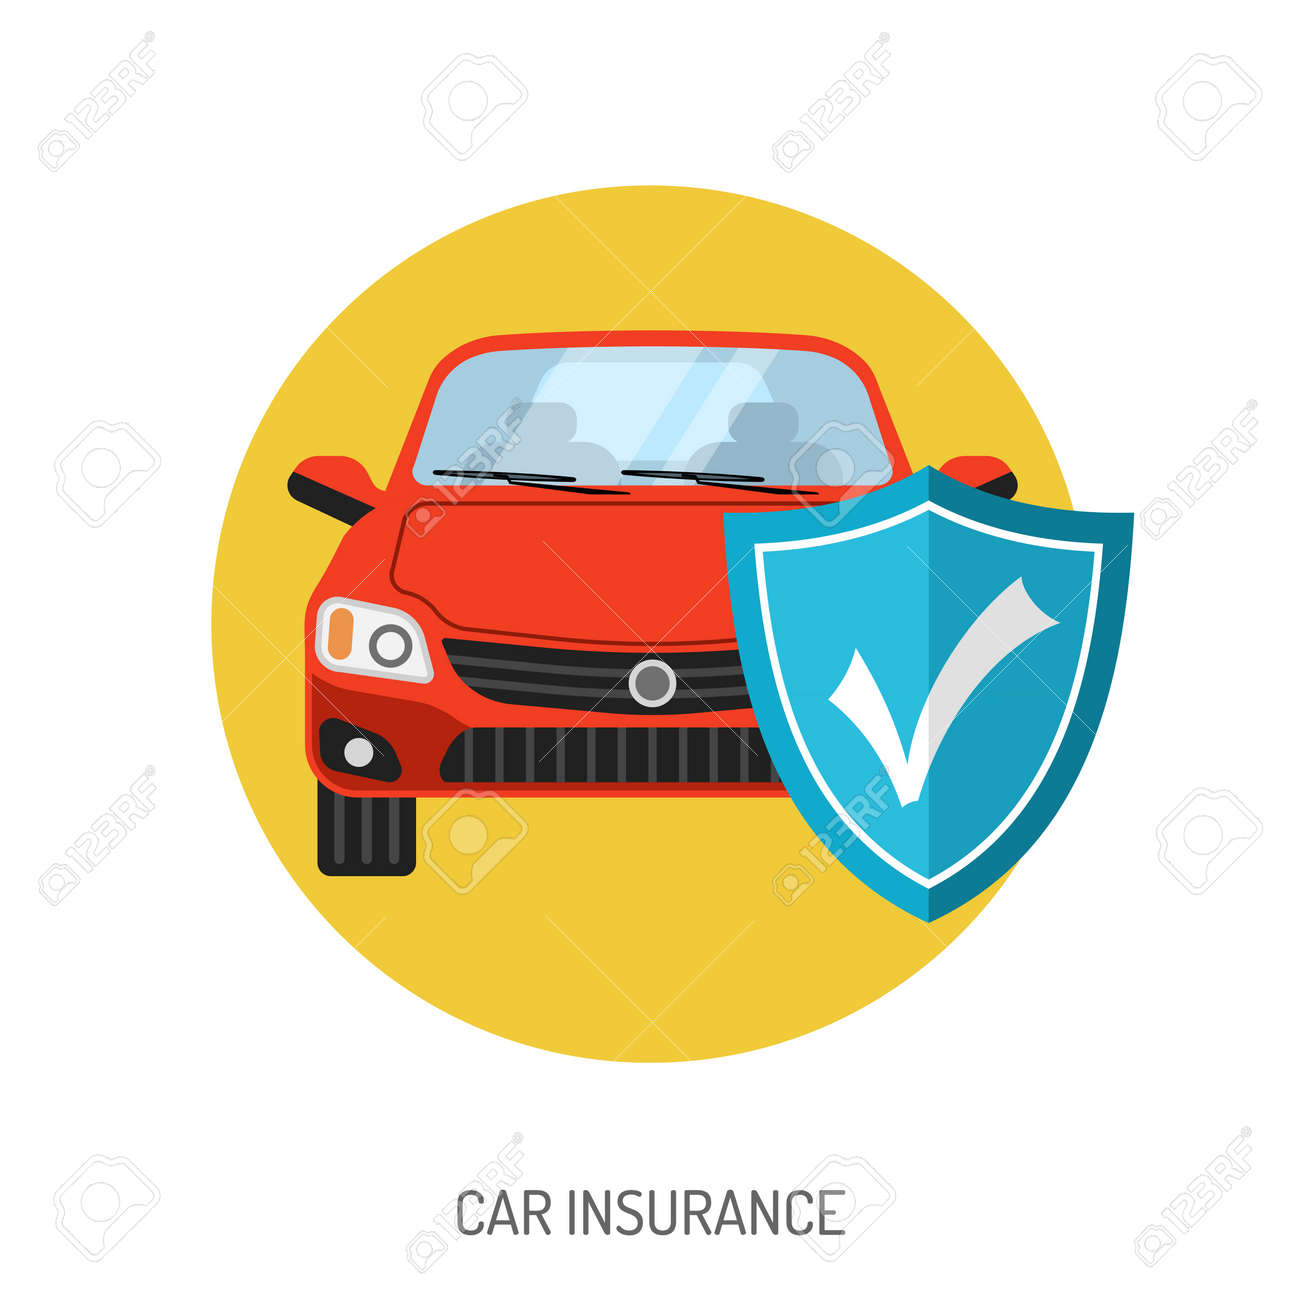 Car Insurance Flat Icon For Web Site Advertising With Shield